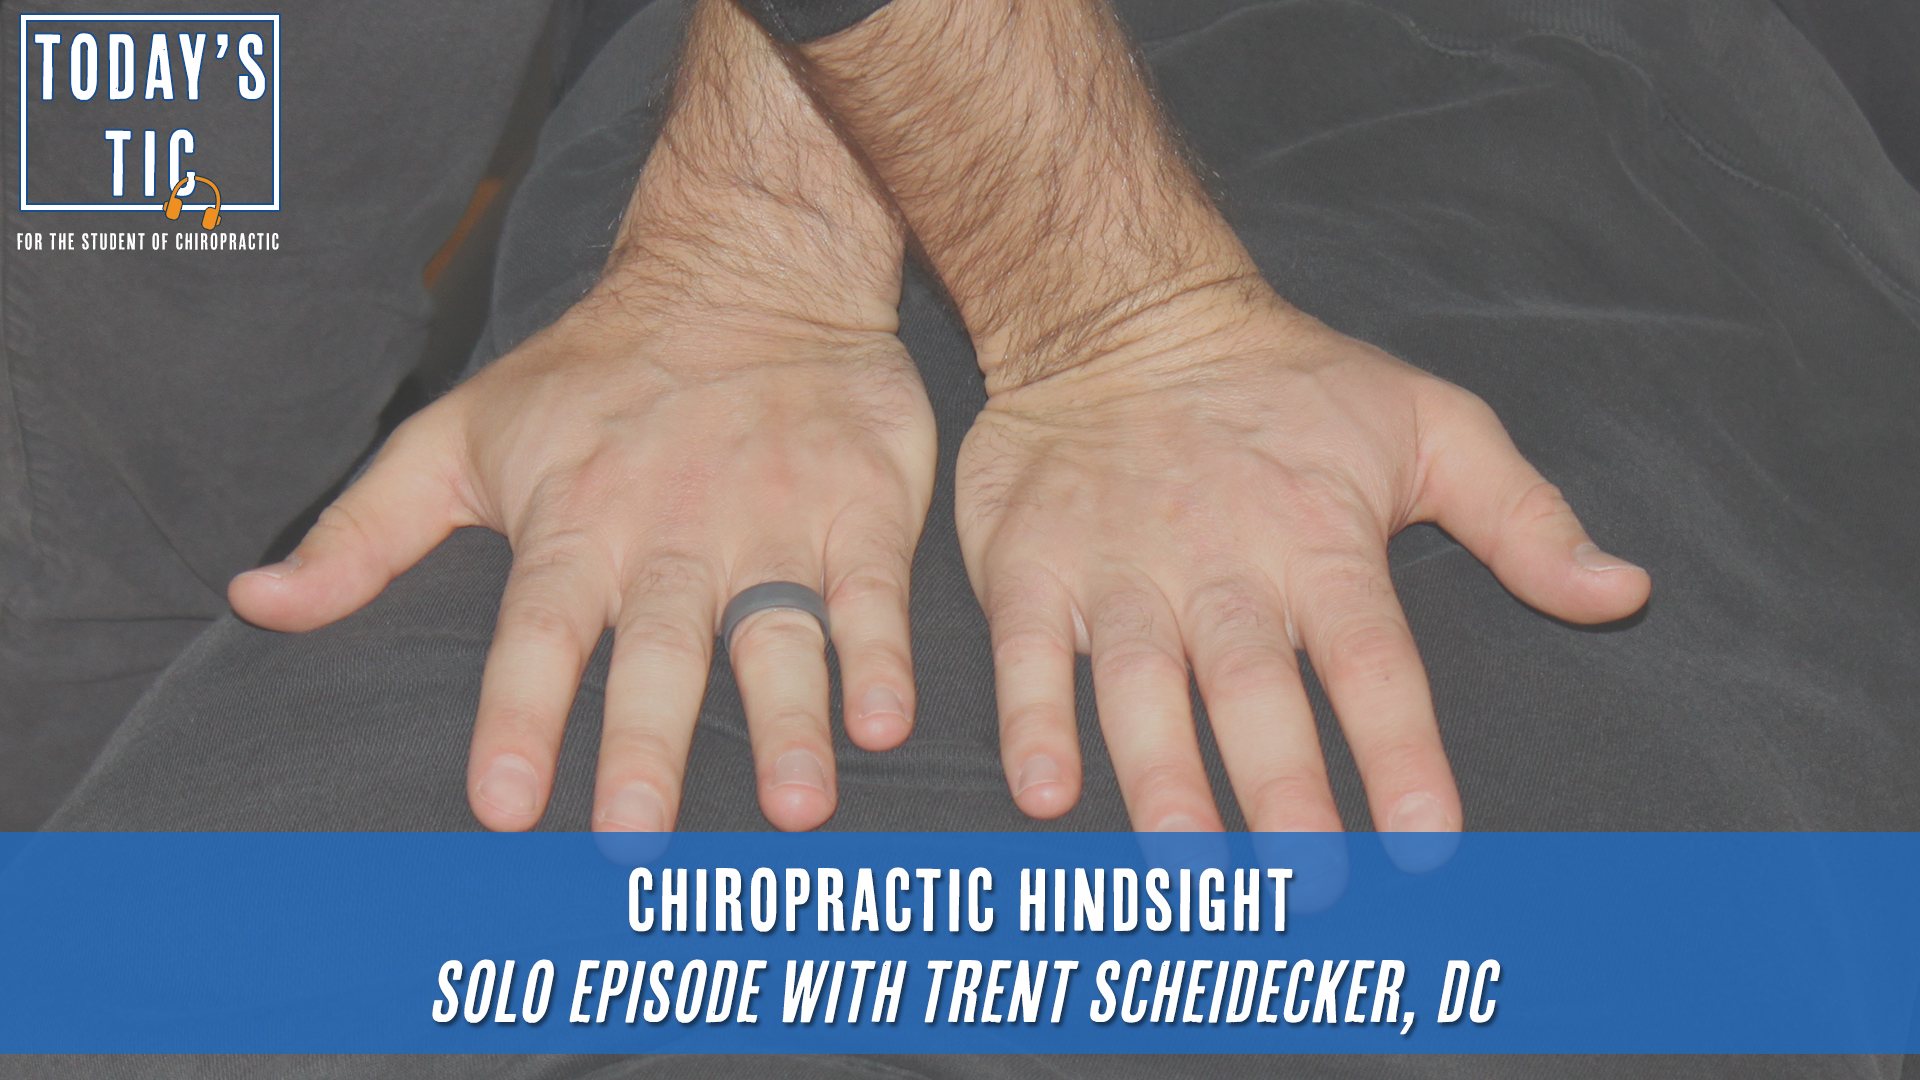 Chiropractic Hindsight